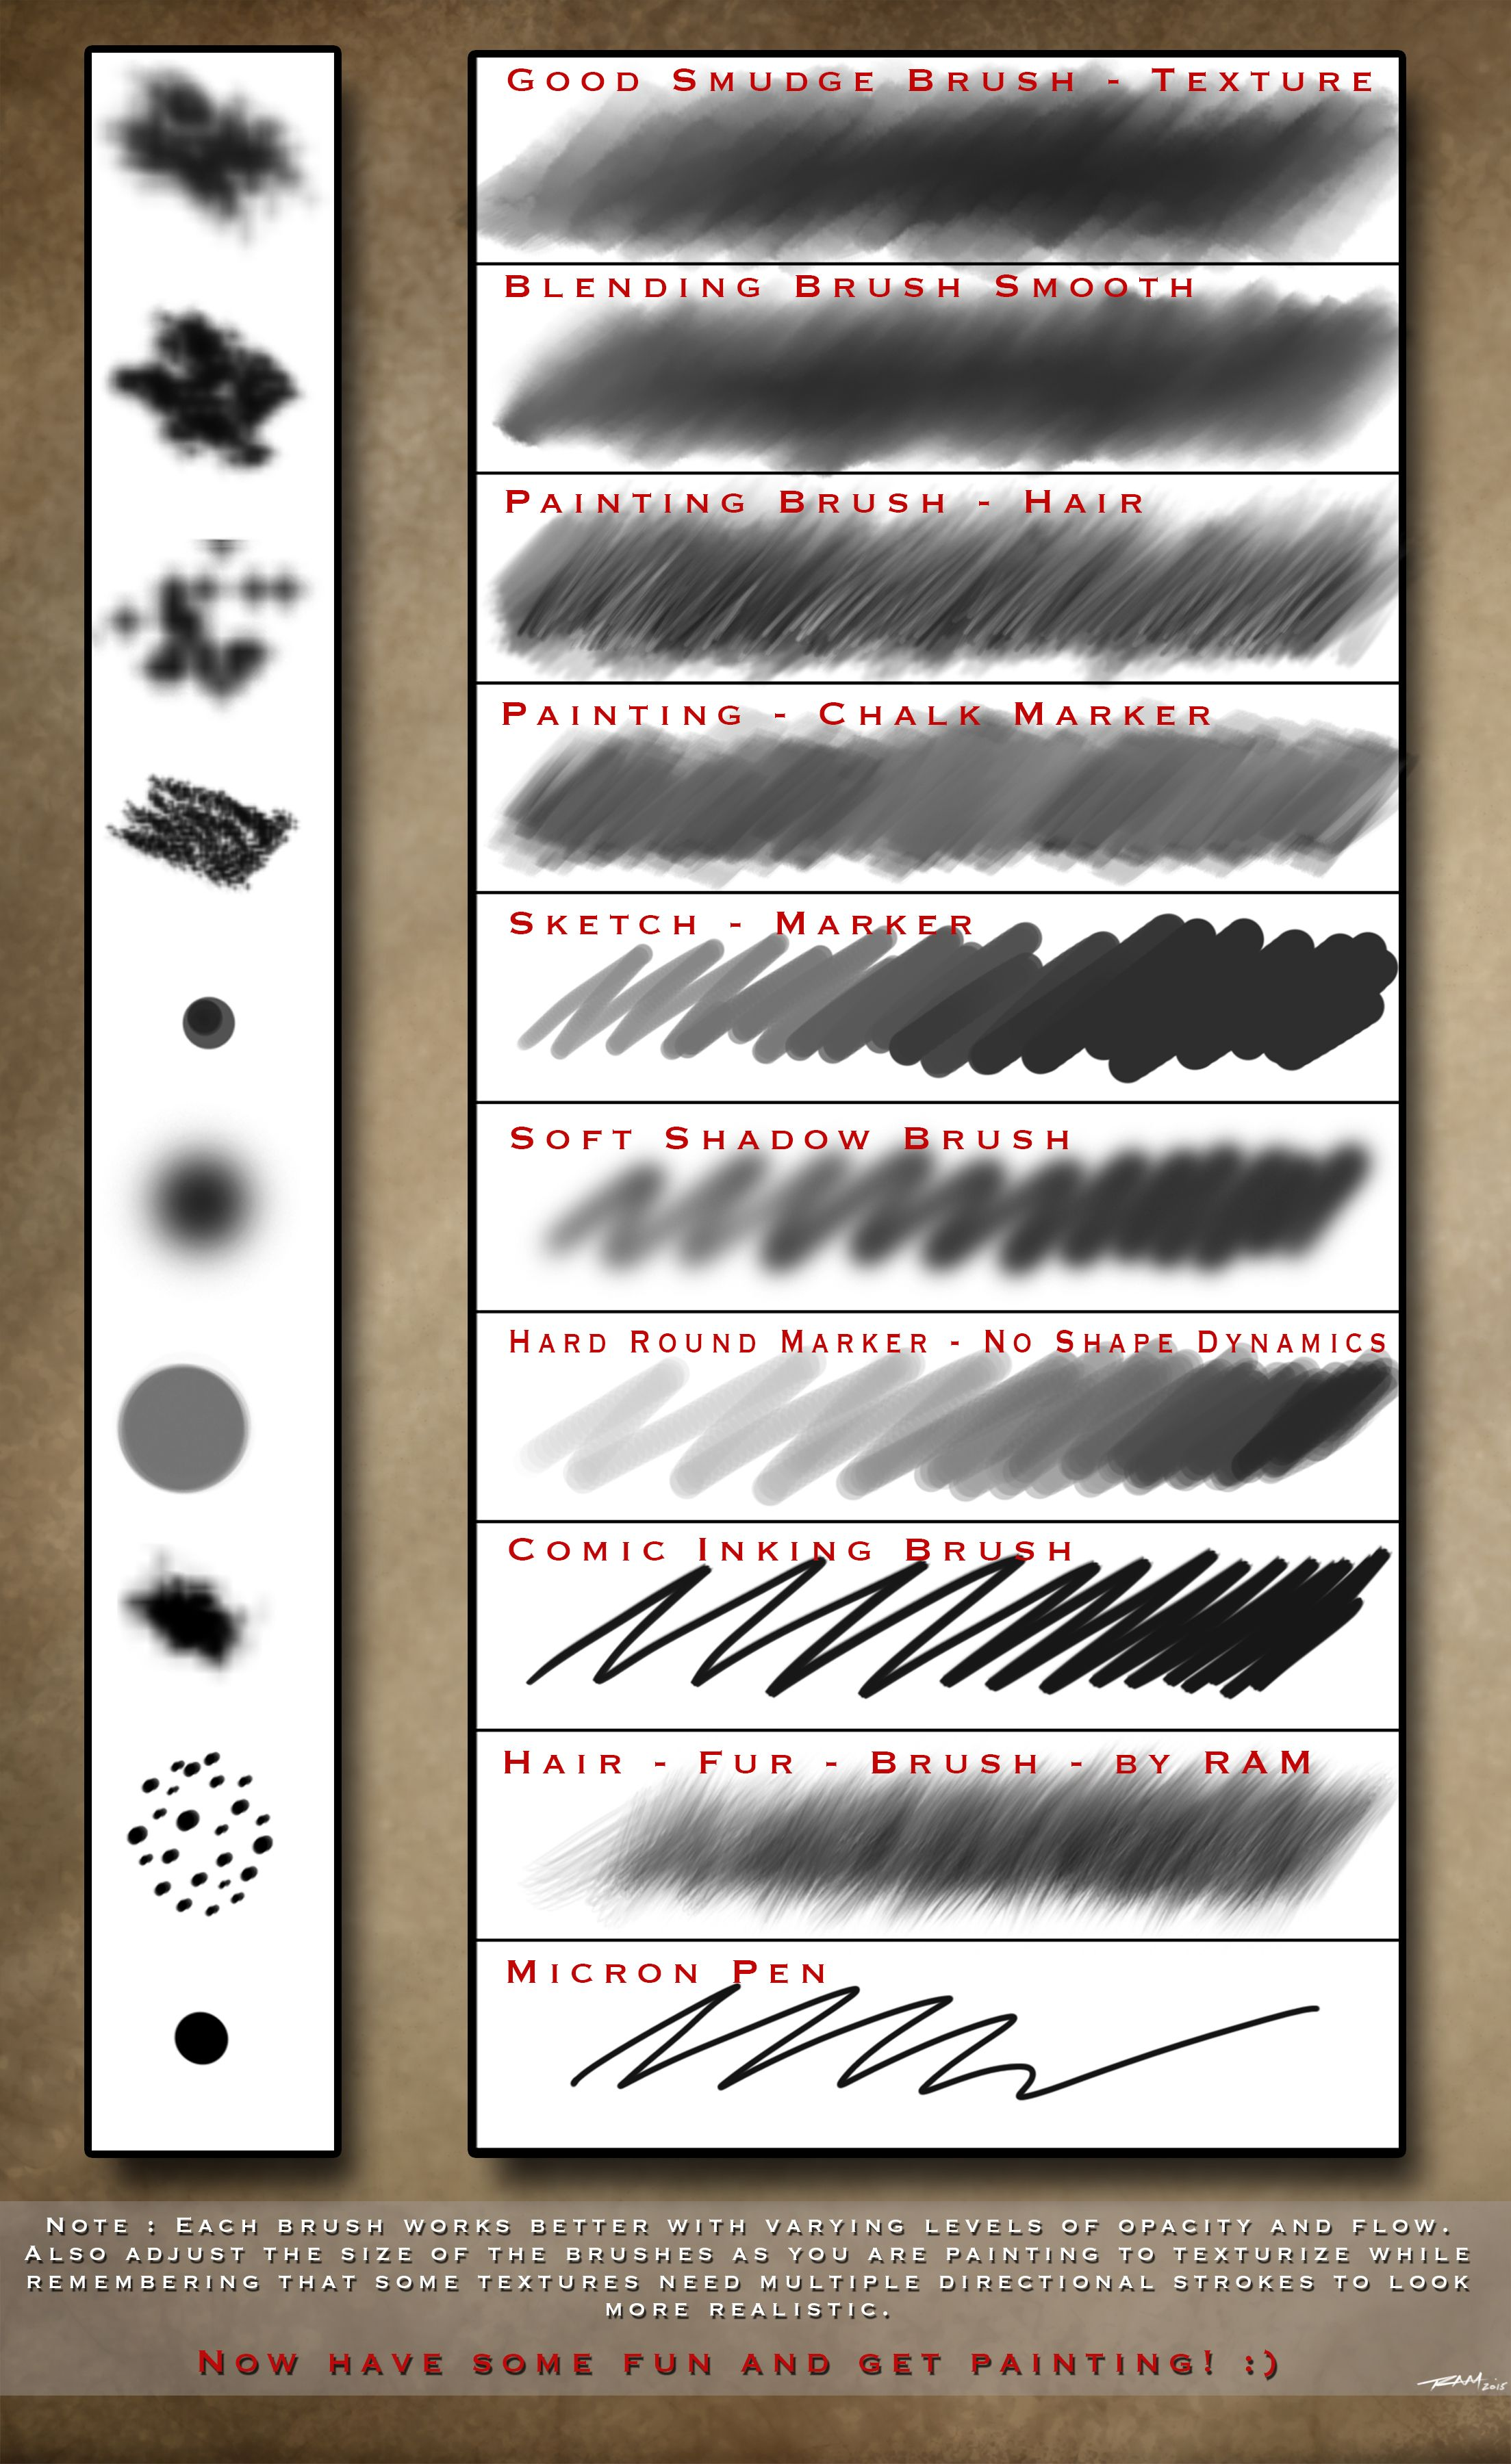 How to Use the Photoshop CC Art History Brush: 9 Steps